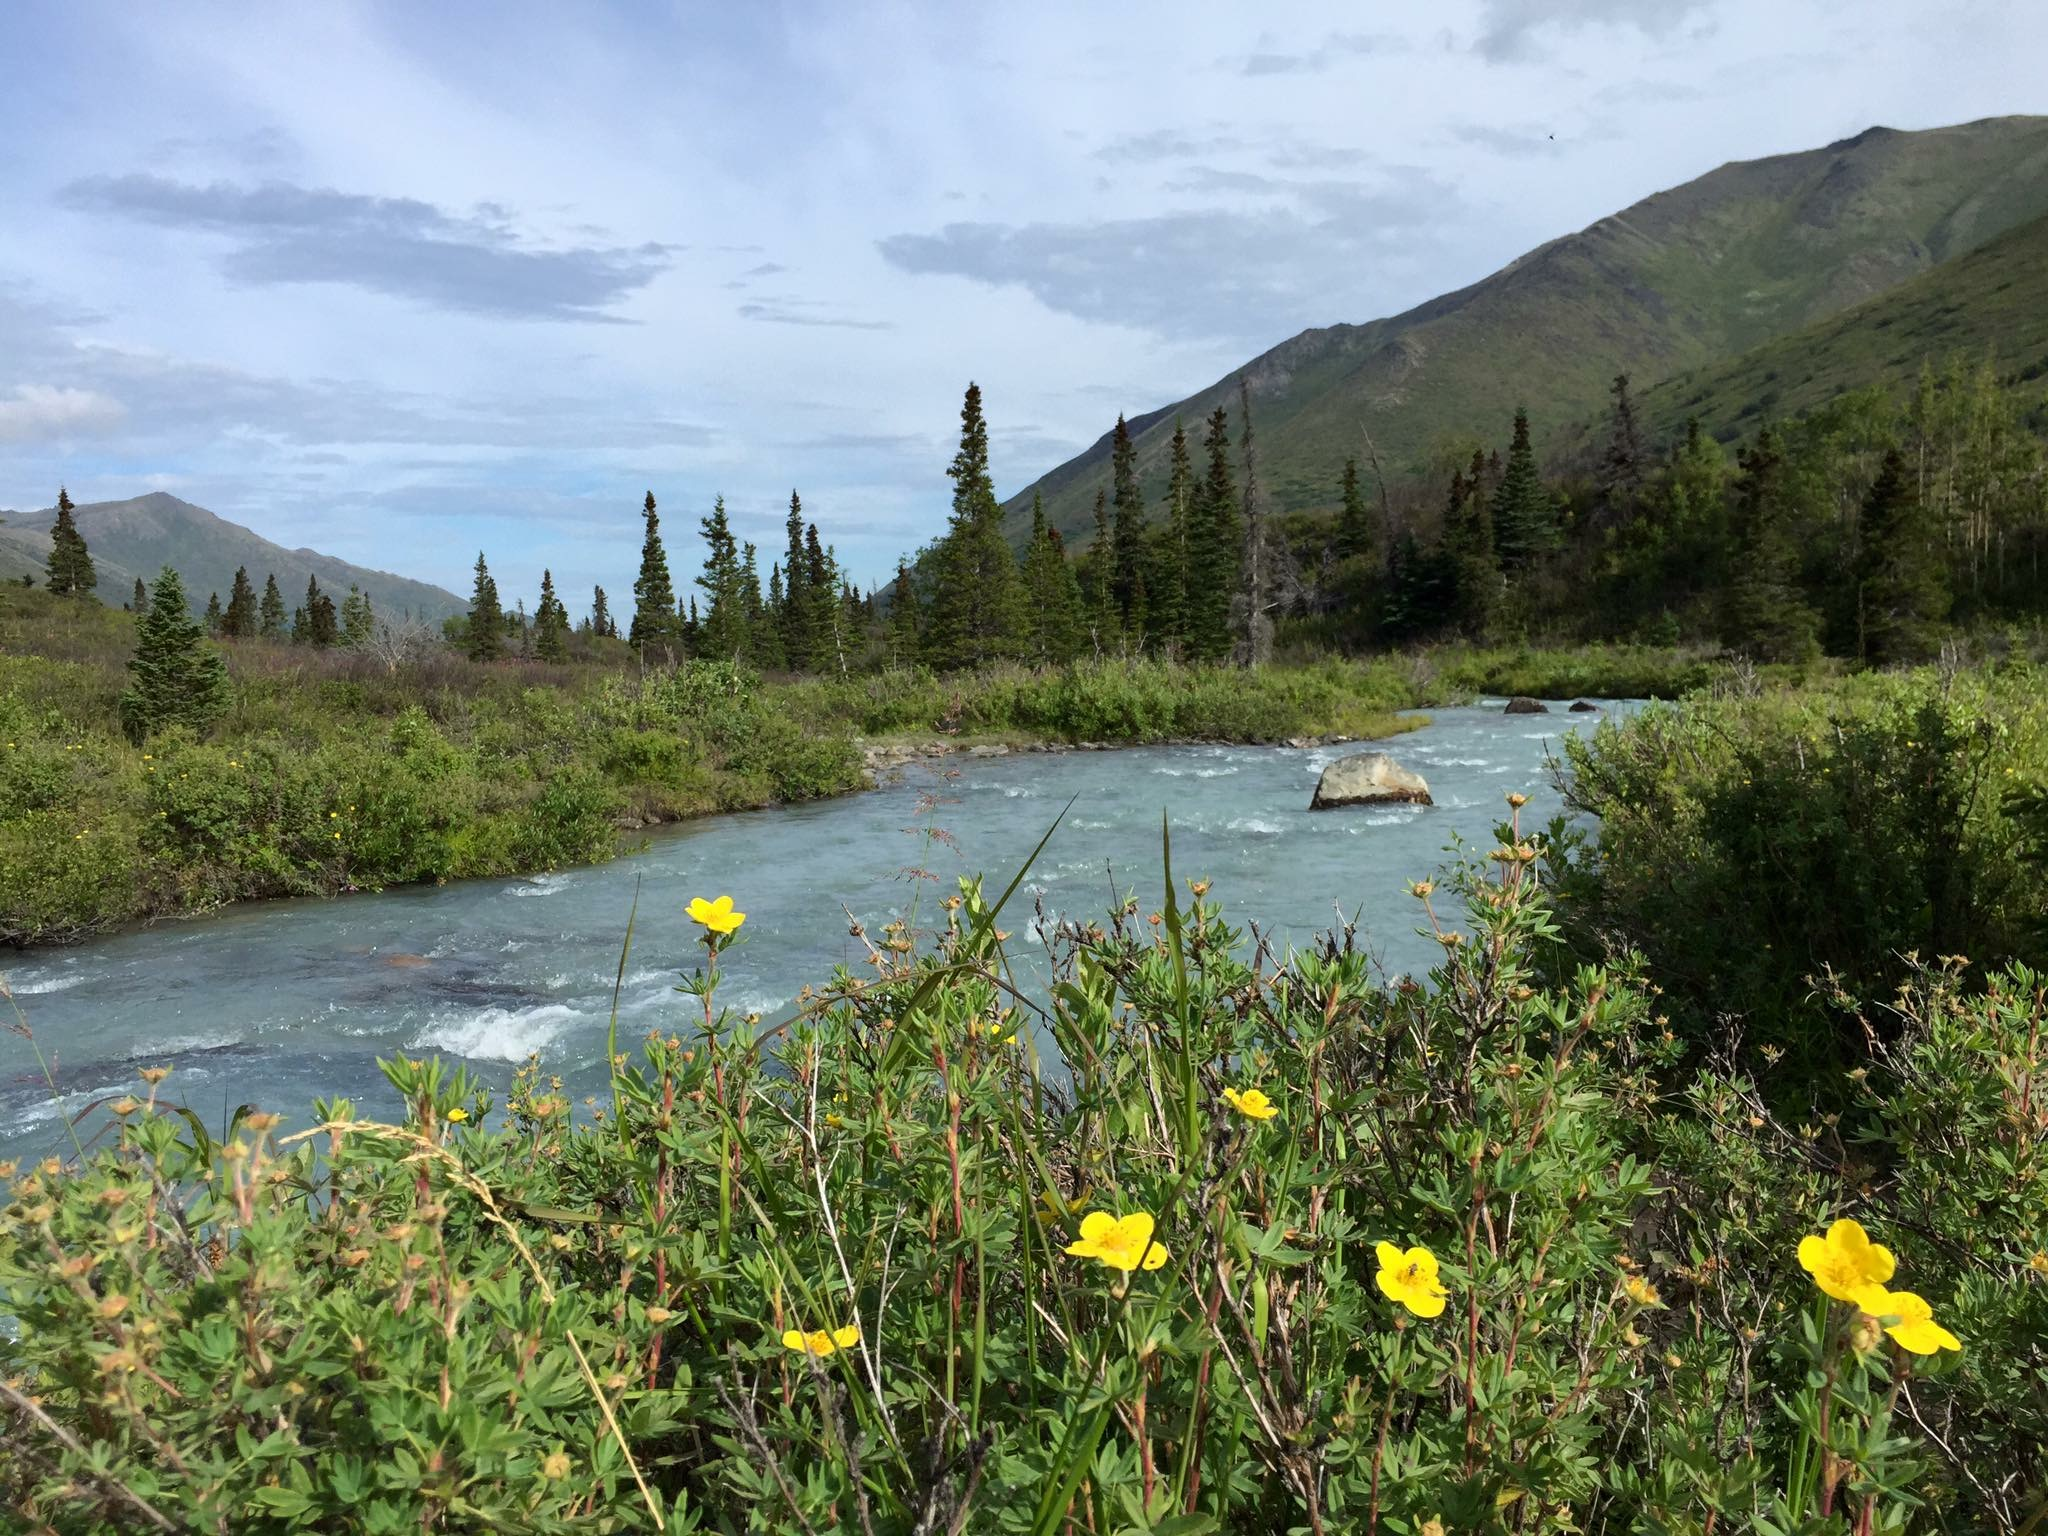 Travel tops most bucket lists and Alaska is a much-desired destination (I shot this near Eagle River).